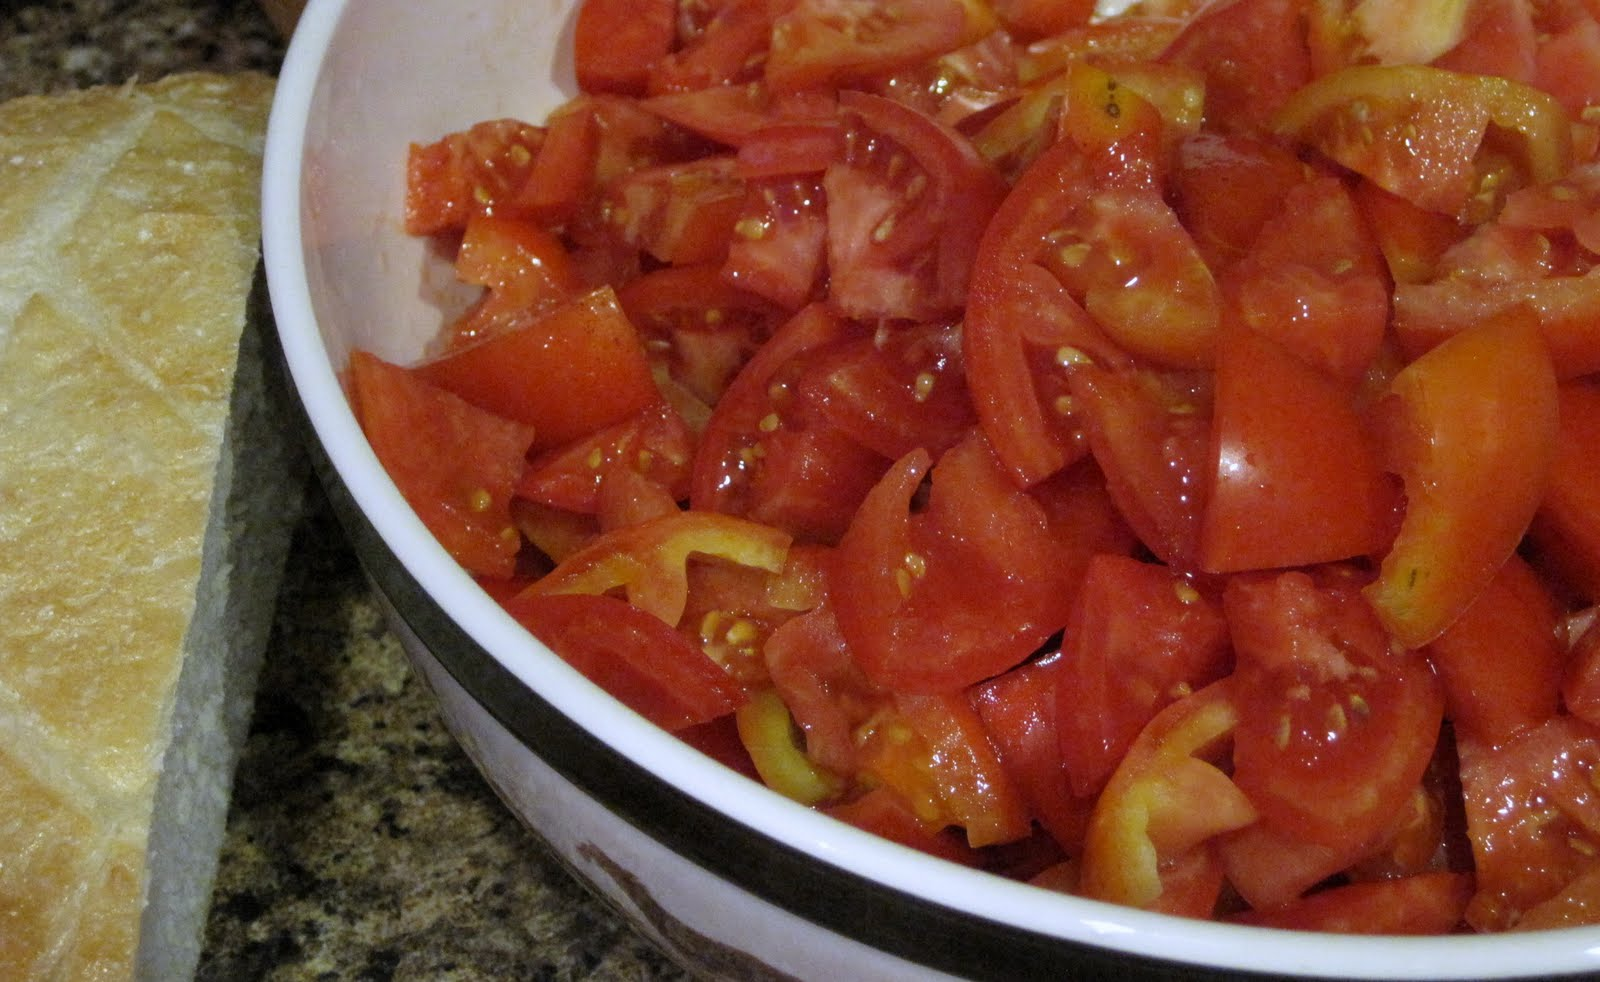 Alissamay's: Scalloped Tomatoes with Croutons